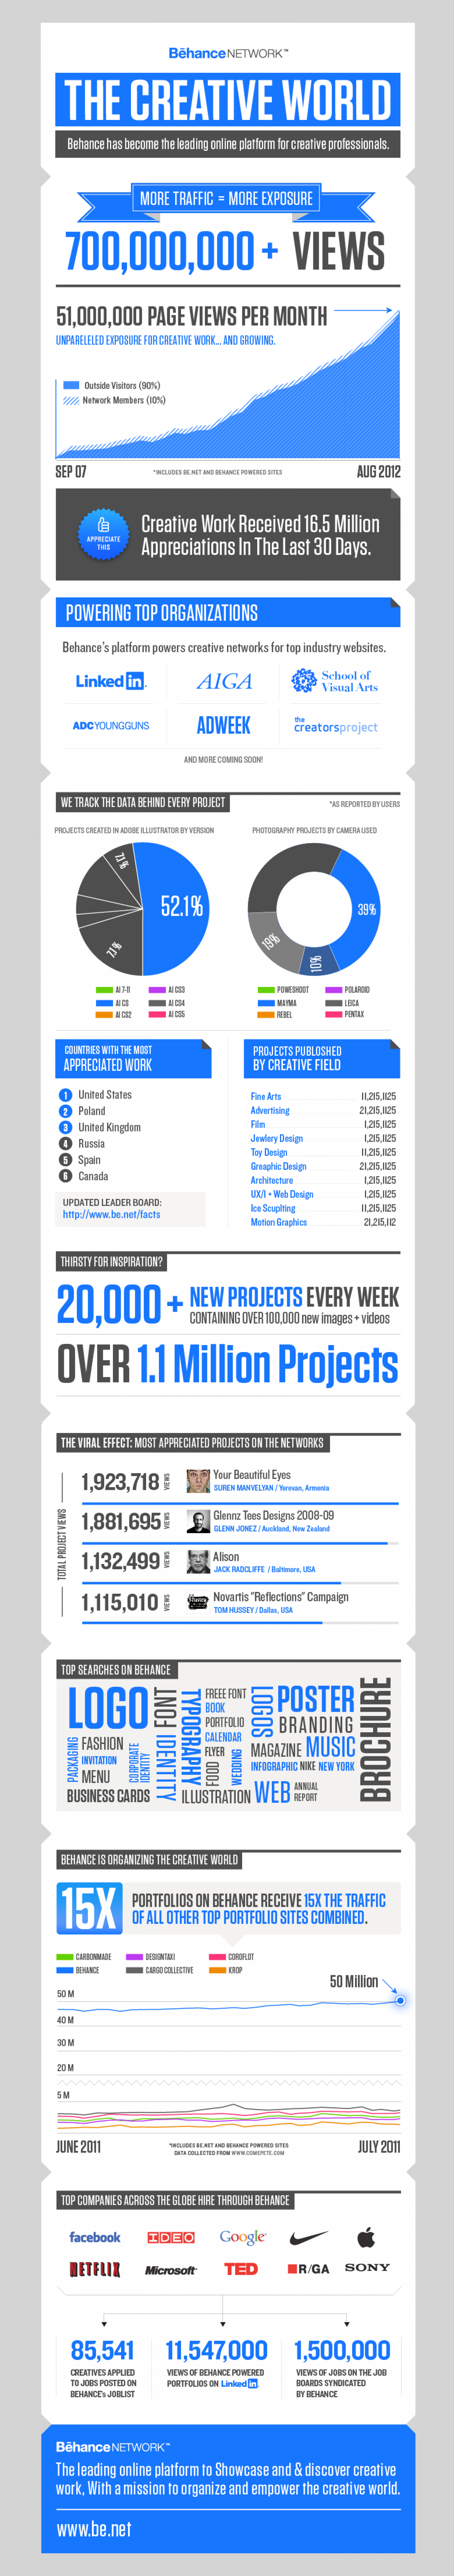 Behance Network 2011 Infographic